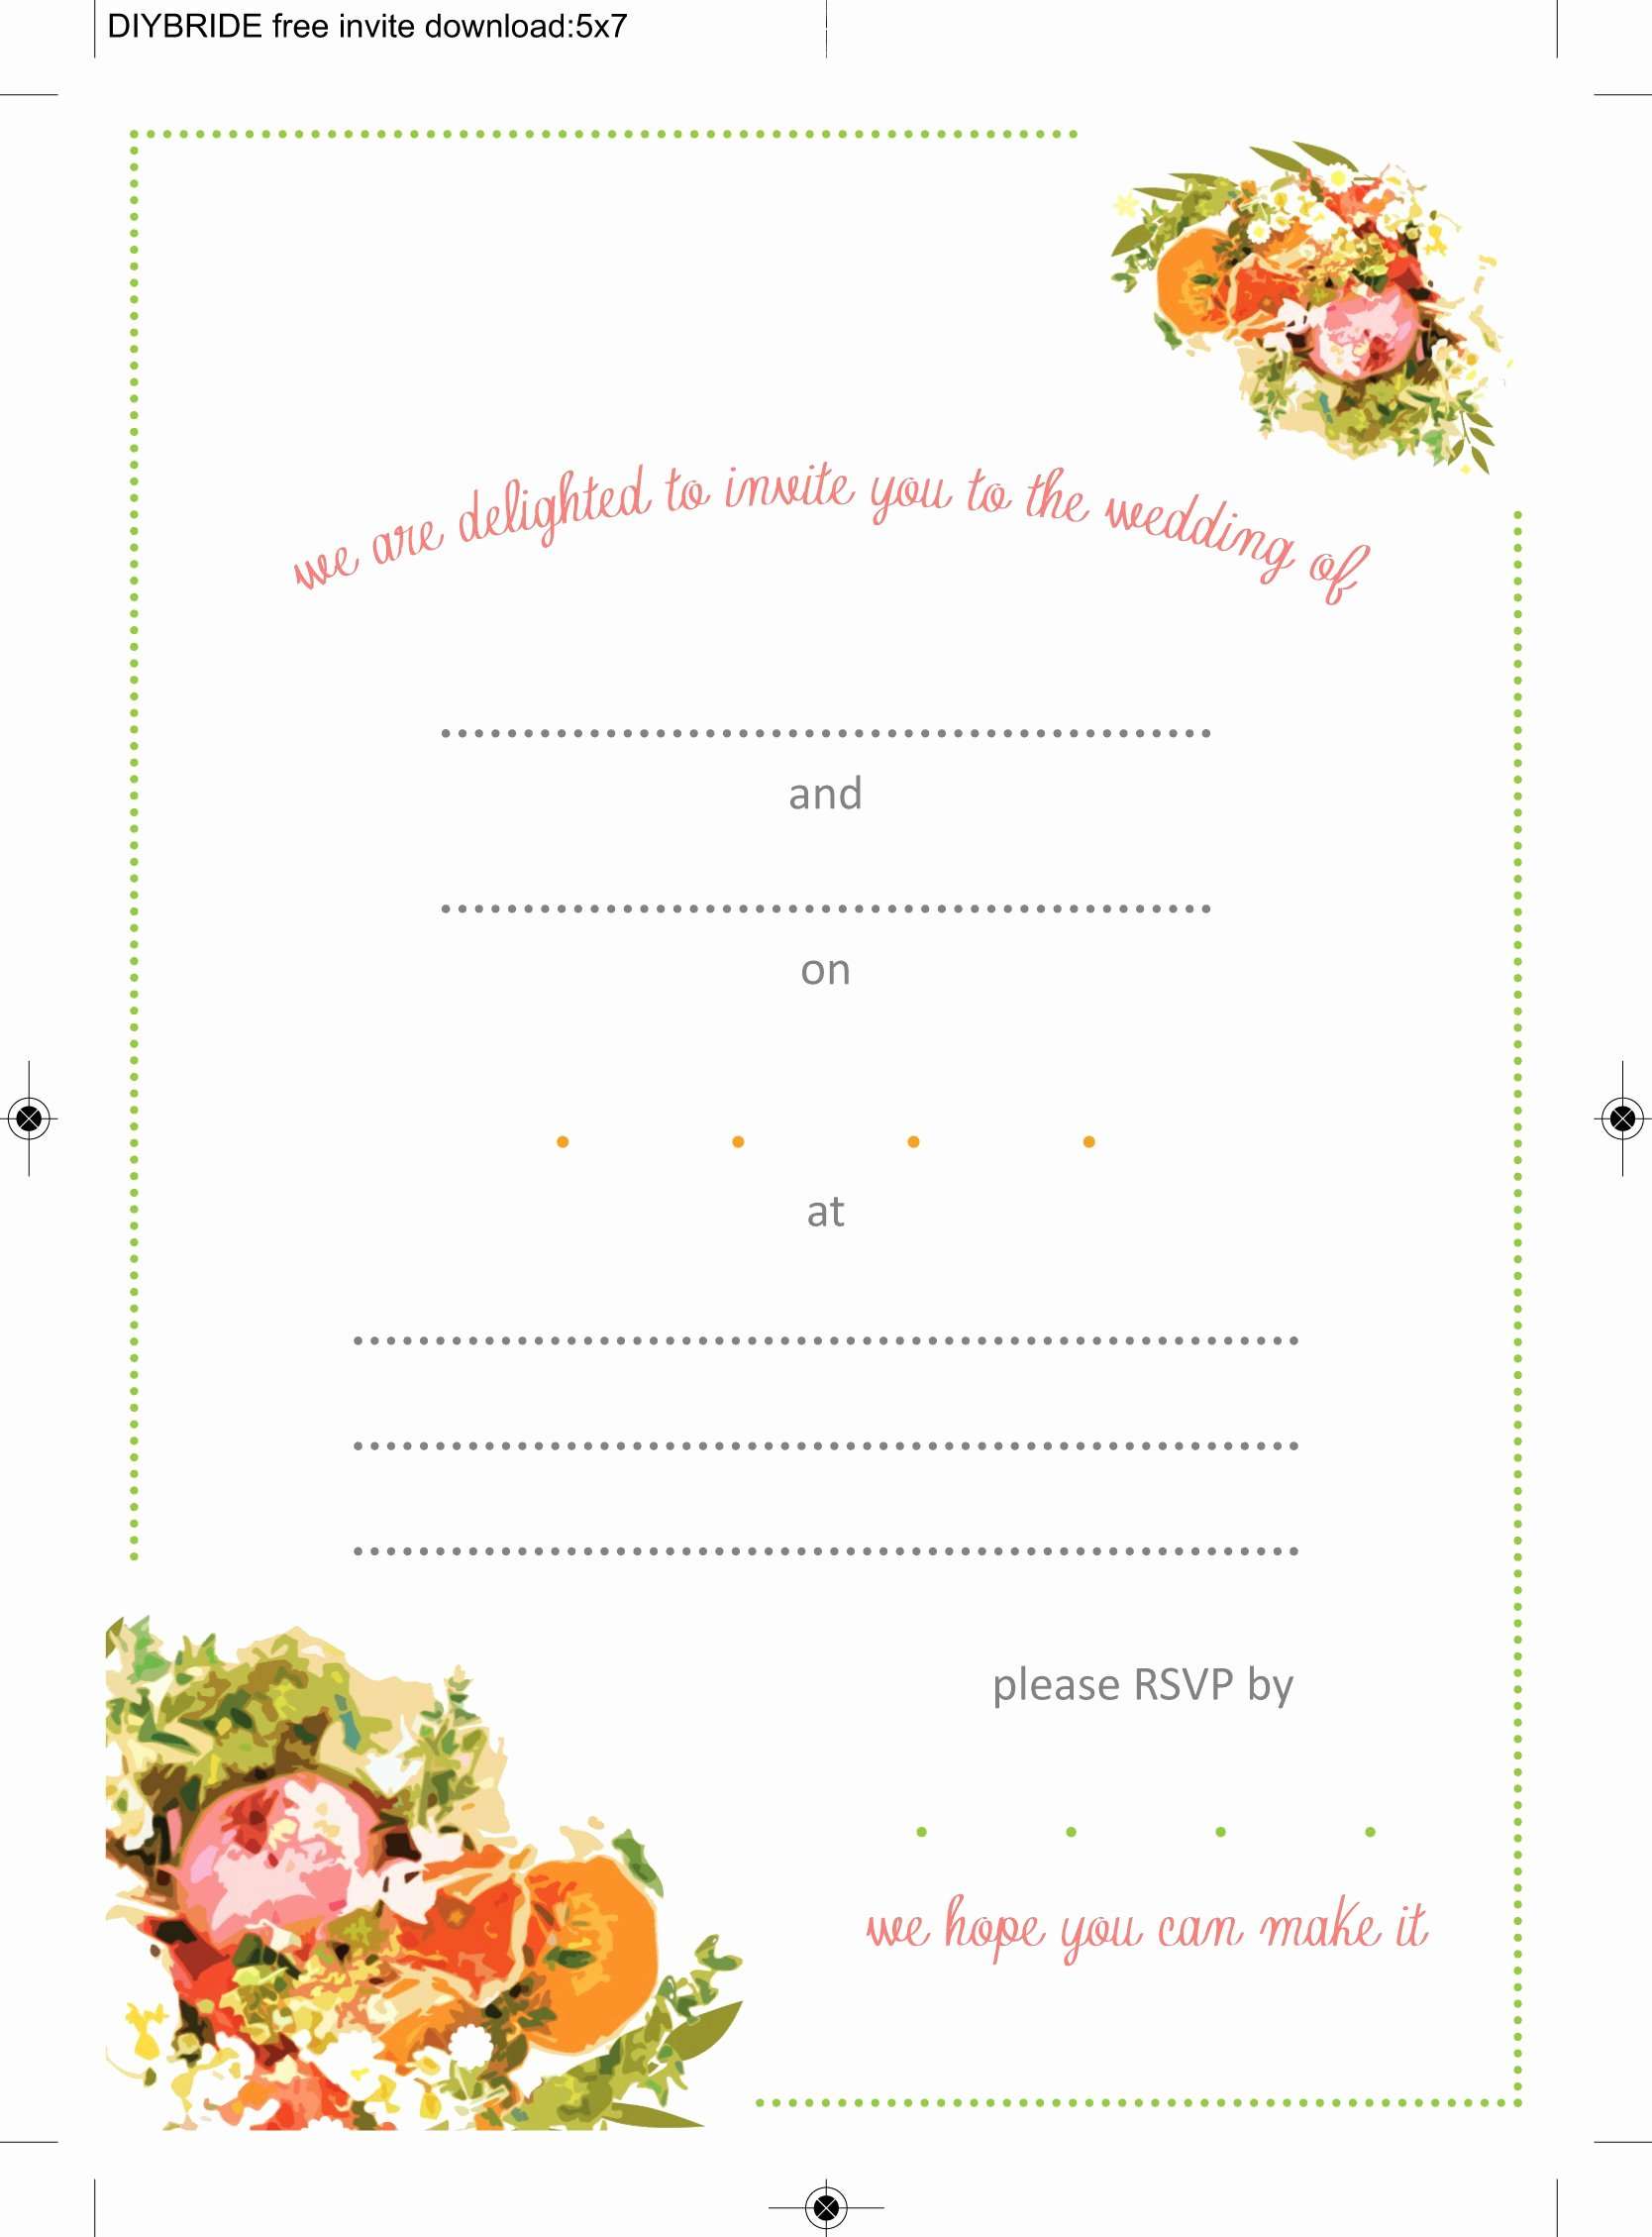 Wedding Invitation Template Free Download Elegant Wedding Invitation Templates that are Cute and Easy to